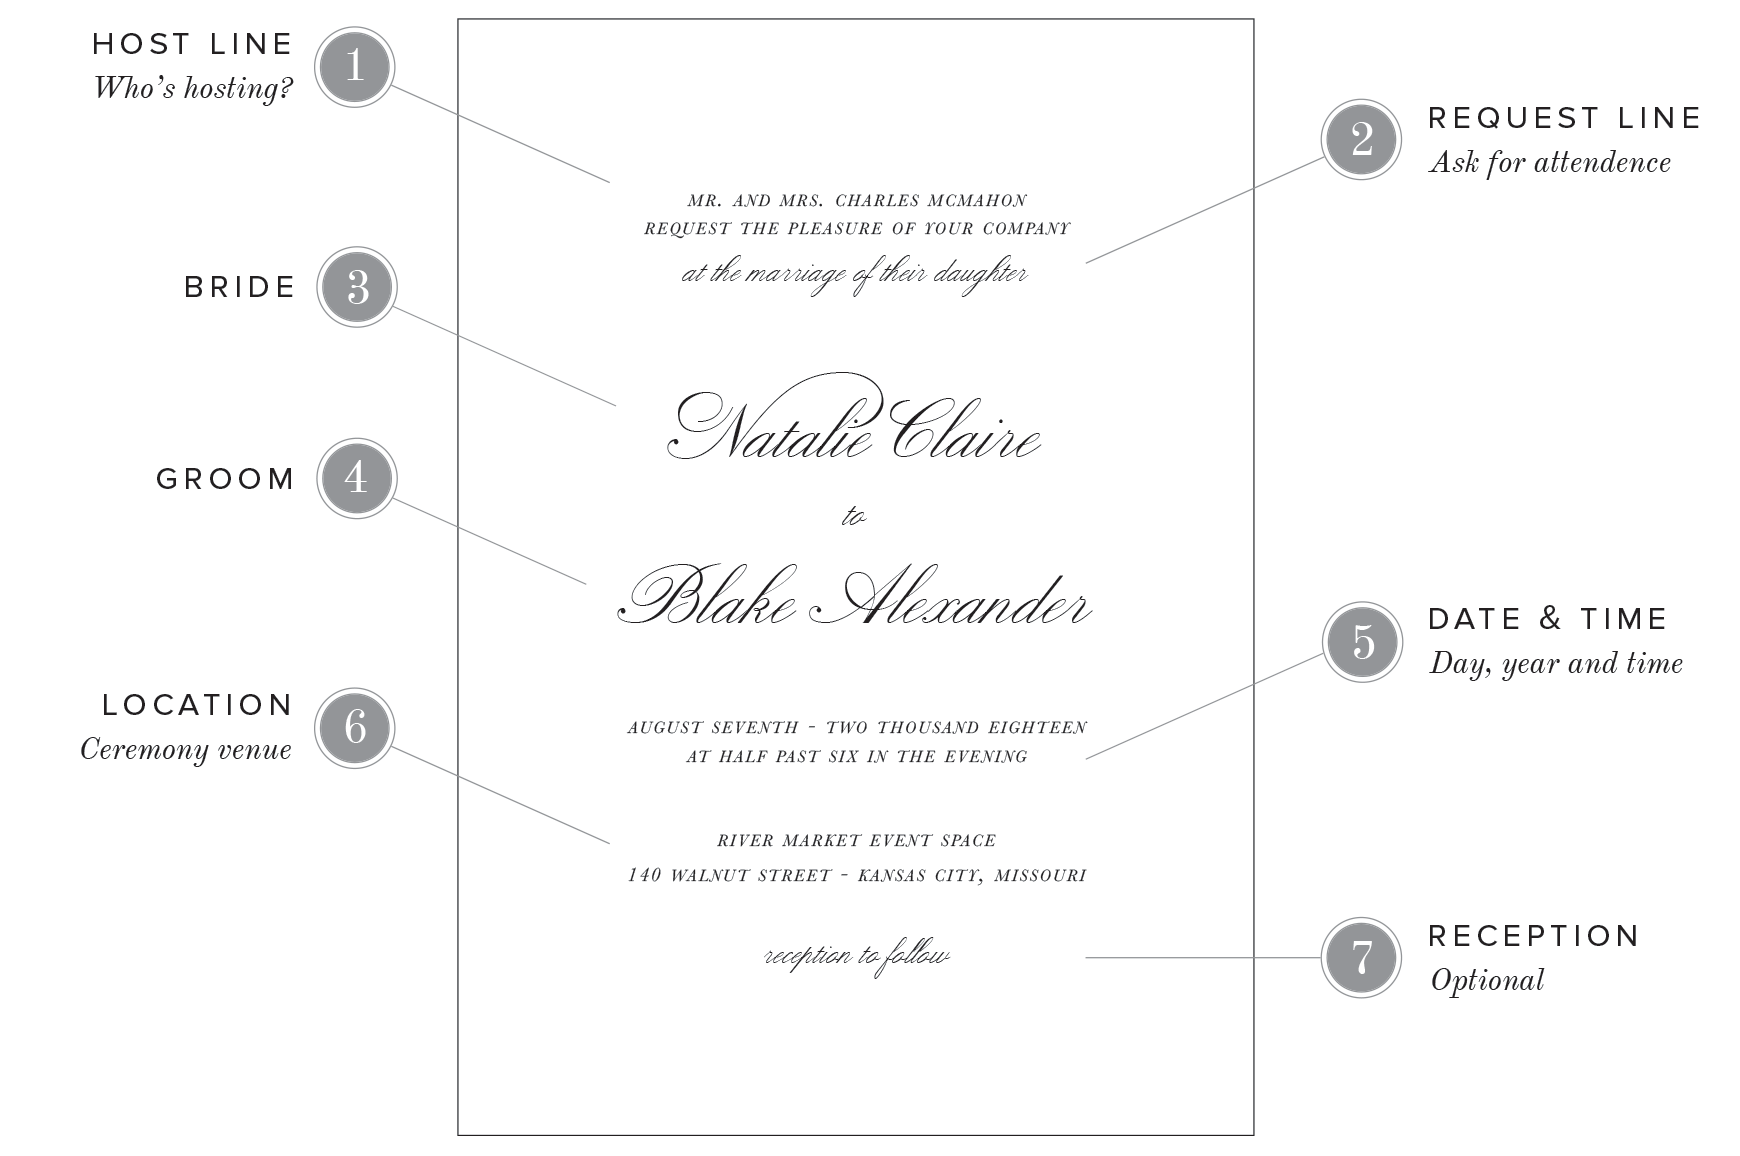 Wedding Invitation Wording Examples | Shine Wedding Invitations ...